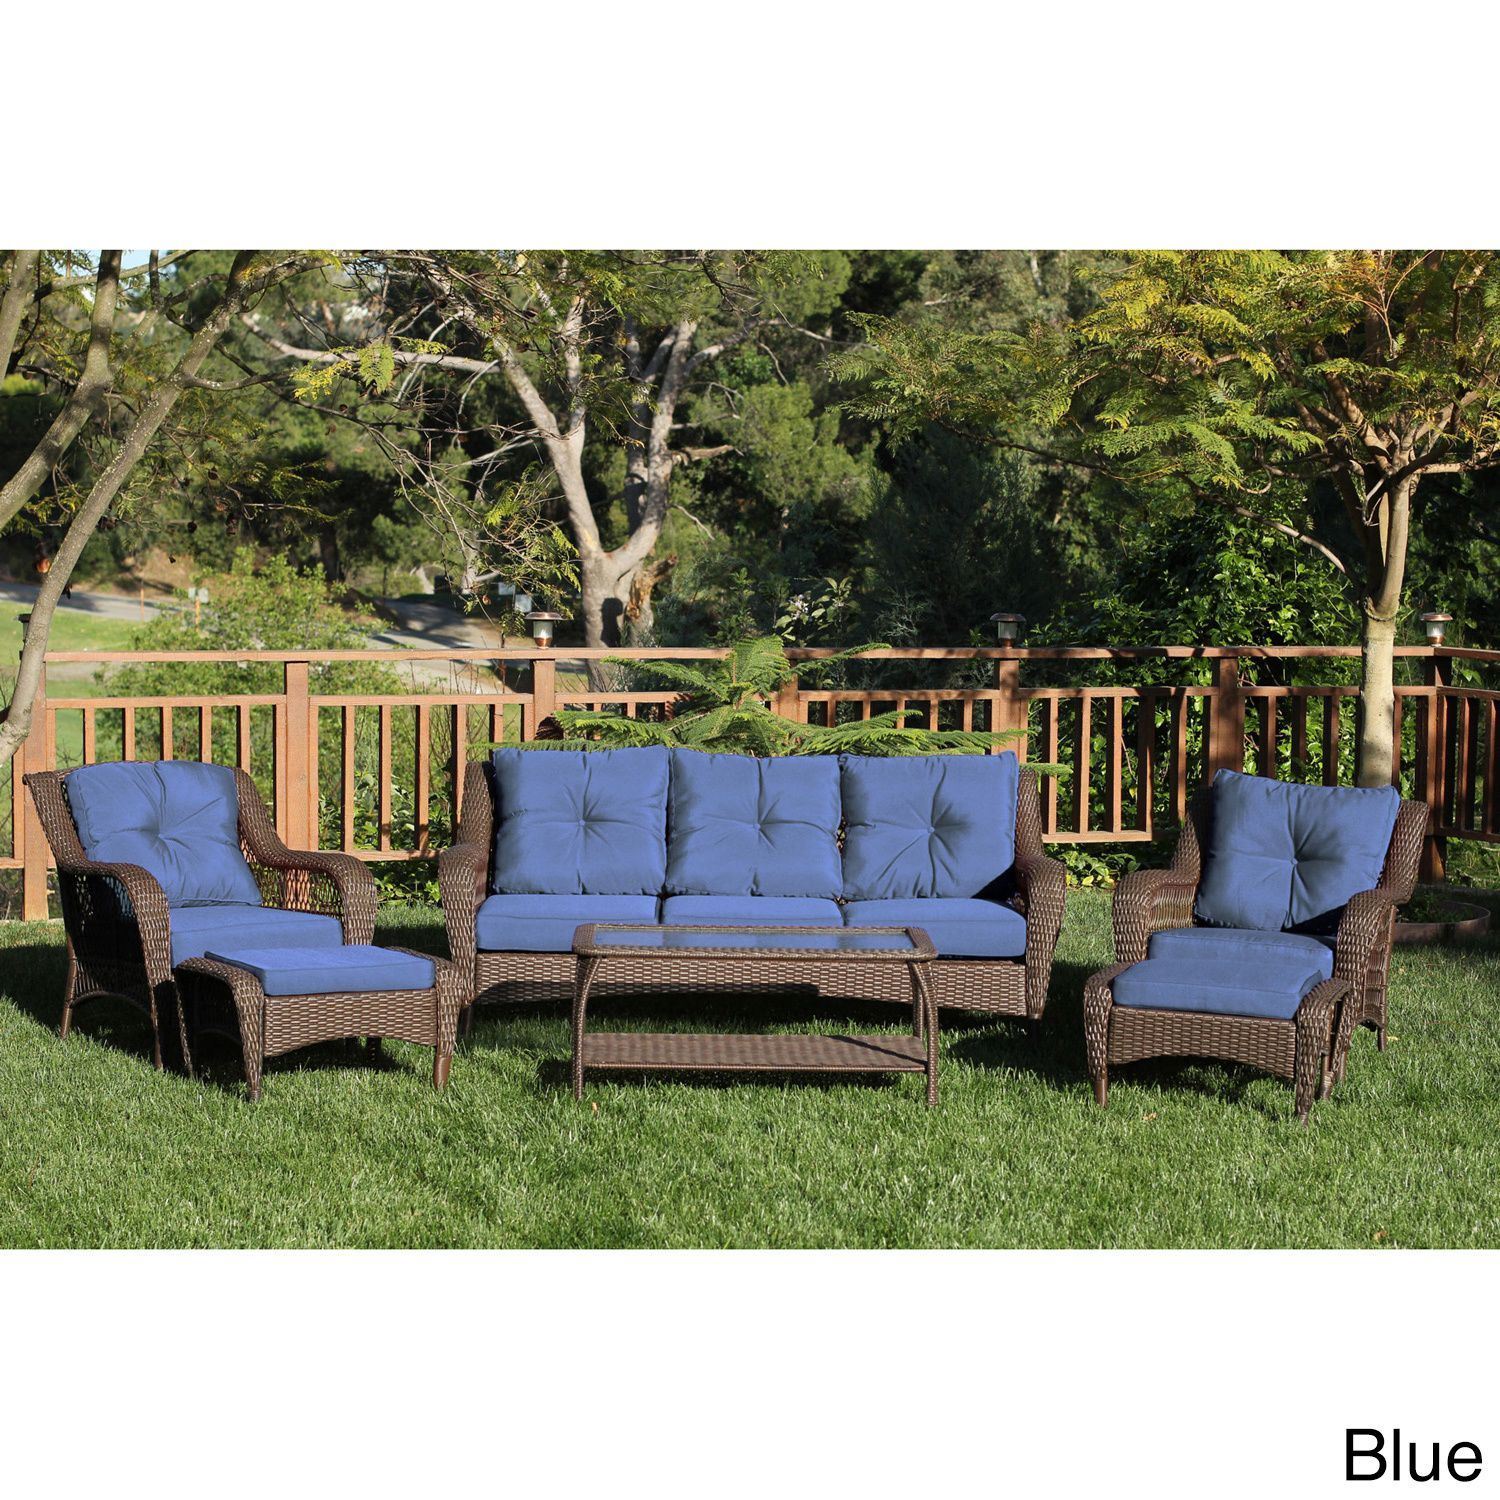 Jeco 6 Piece Resin Wicker Patio Conversation Set Blue Cushions